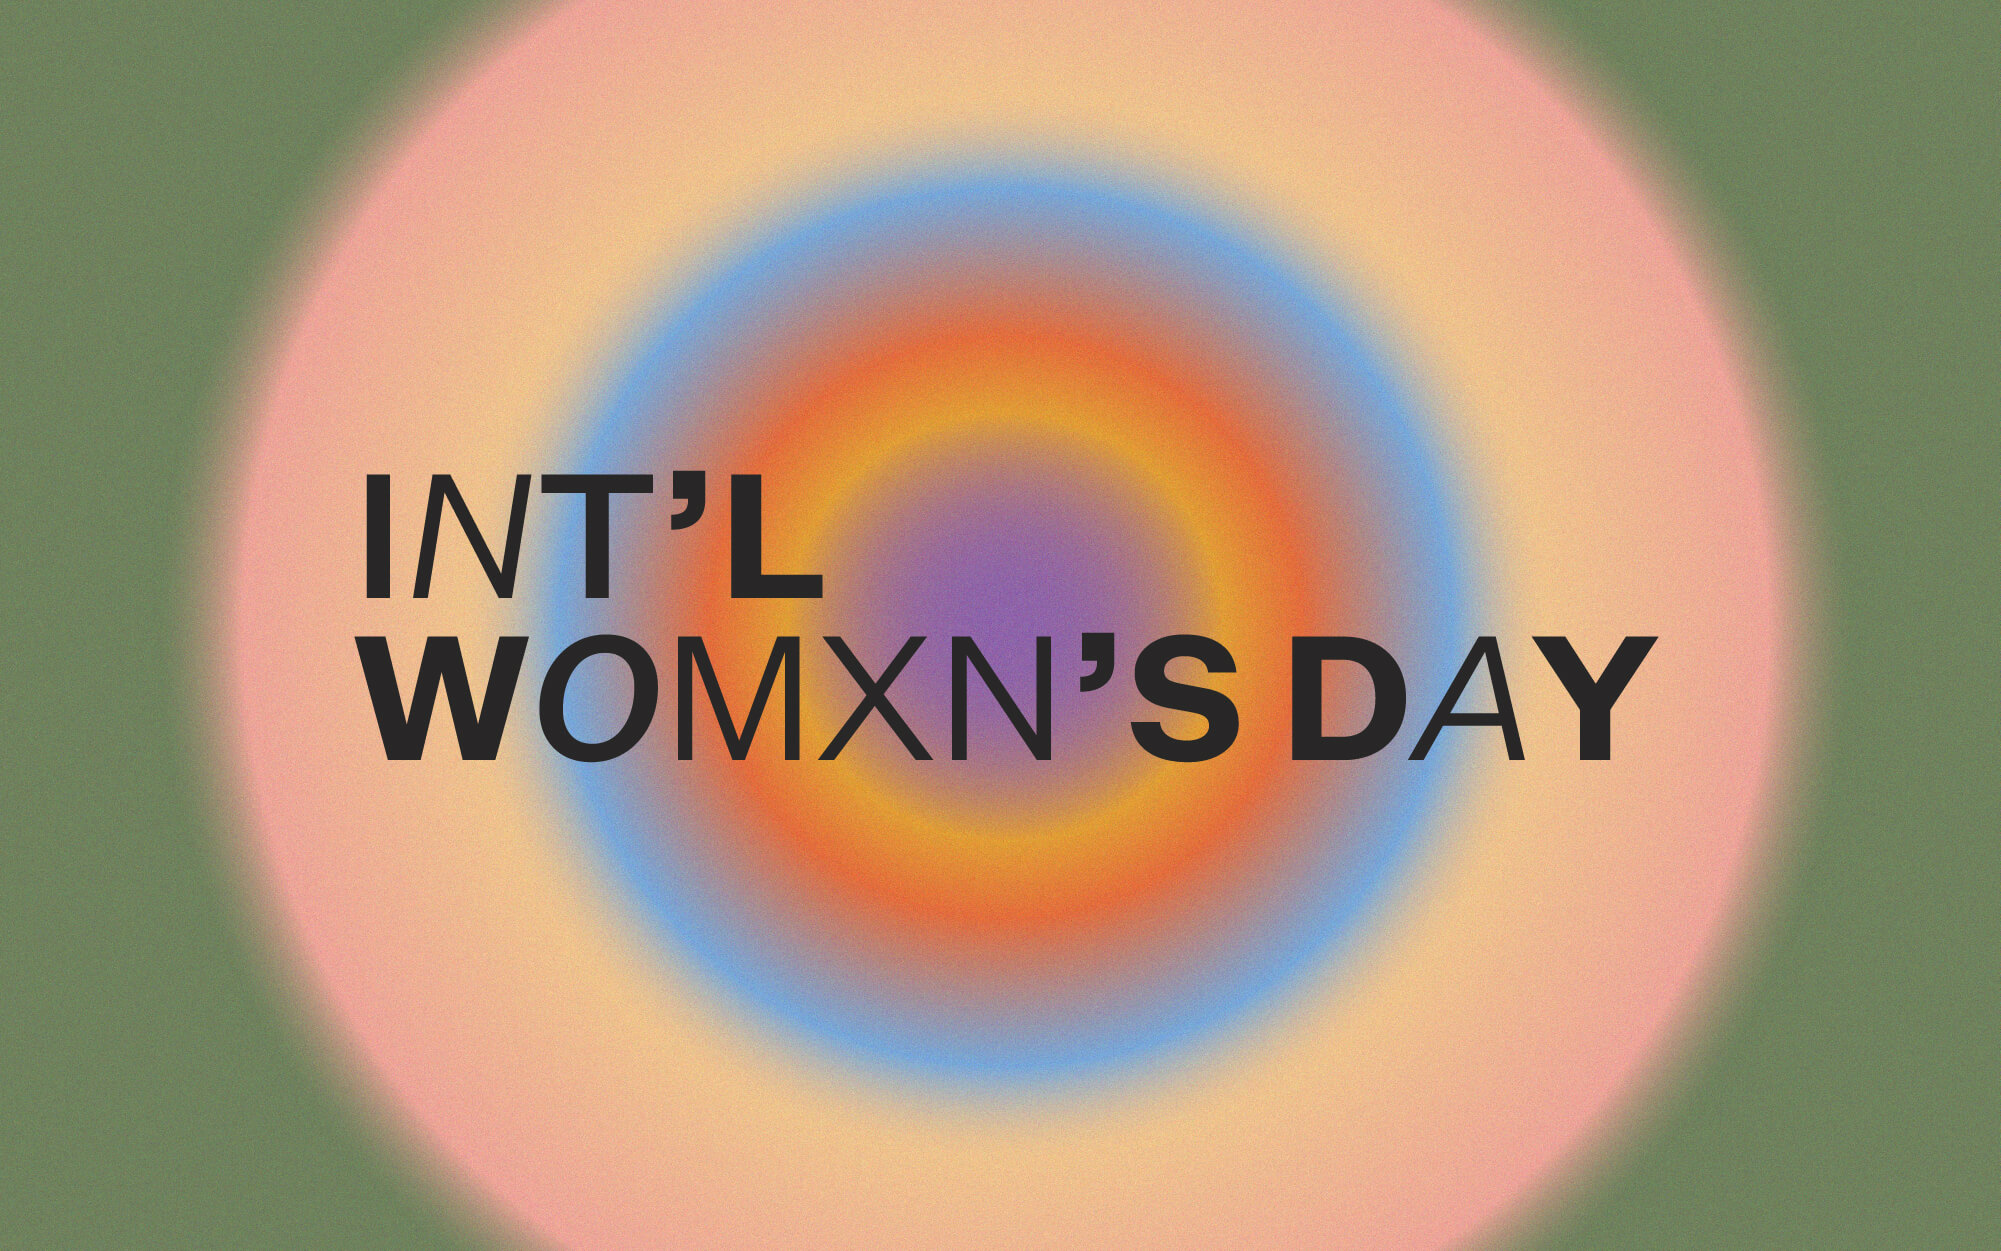 INT'L WOMXN'S DAY - Coming March 8, 2021